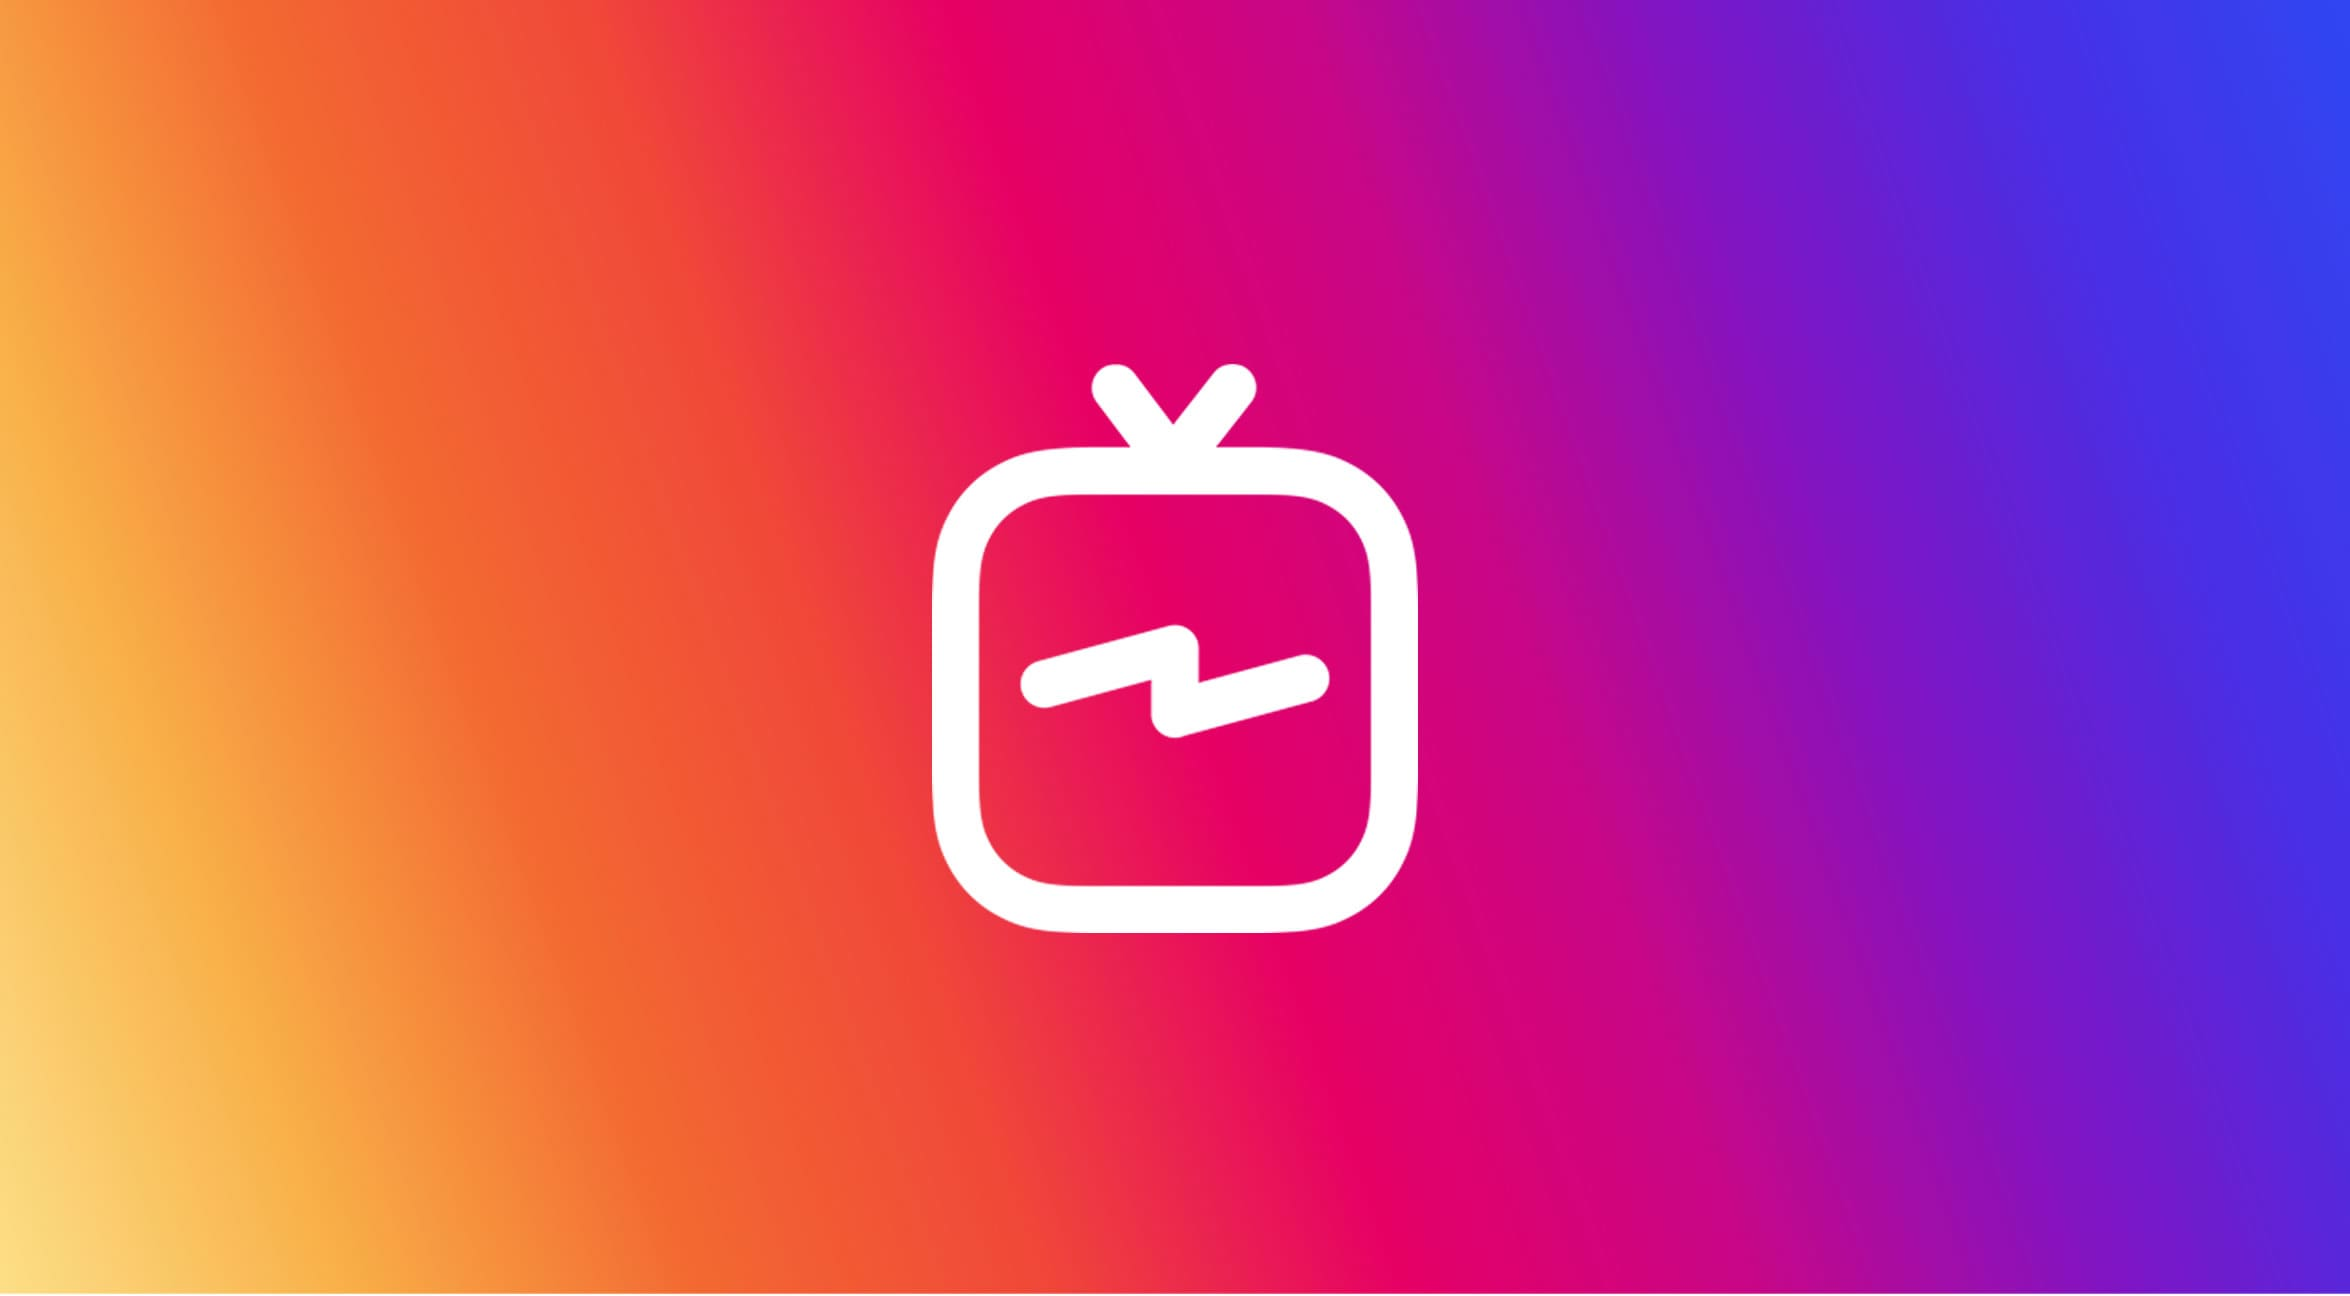 Tips to Use Instagram as a Graphic Designer - Instagram IGTV